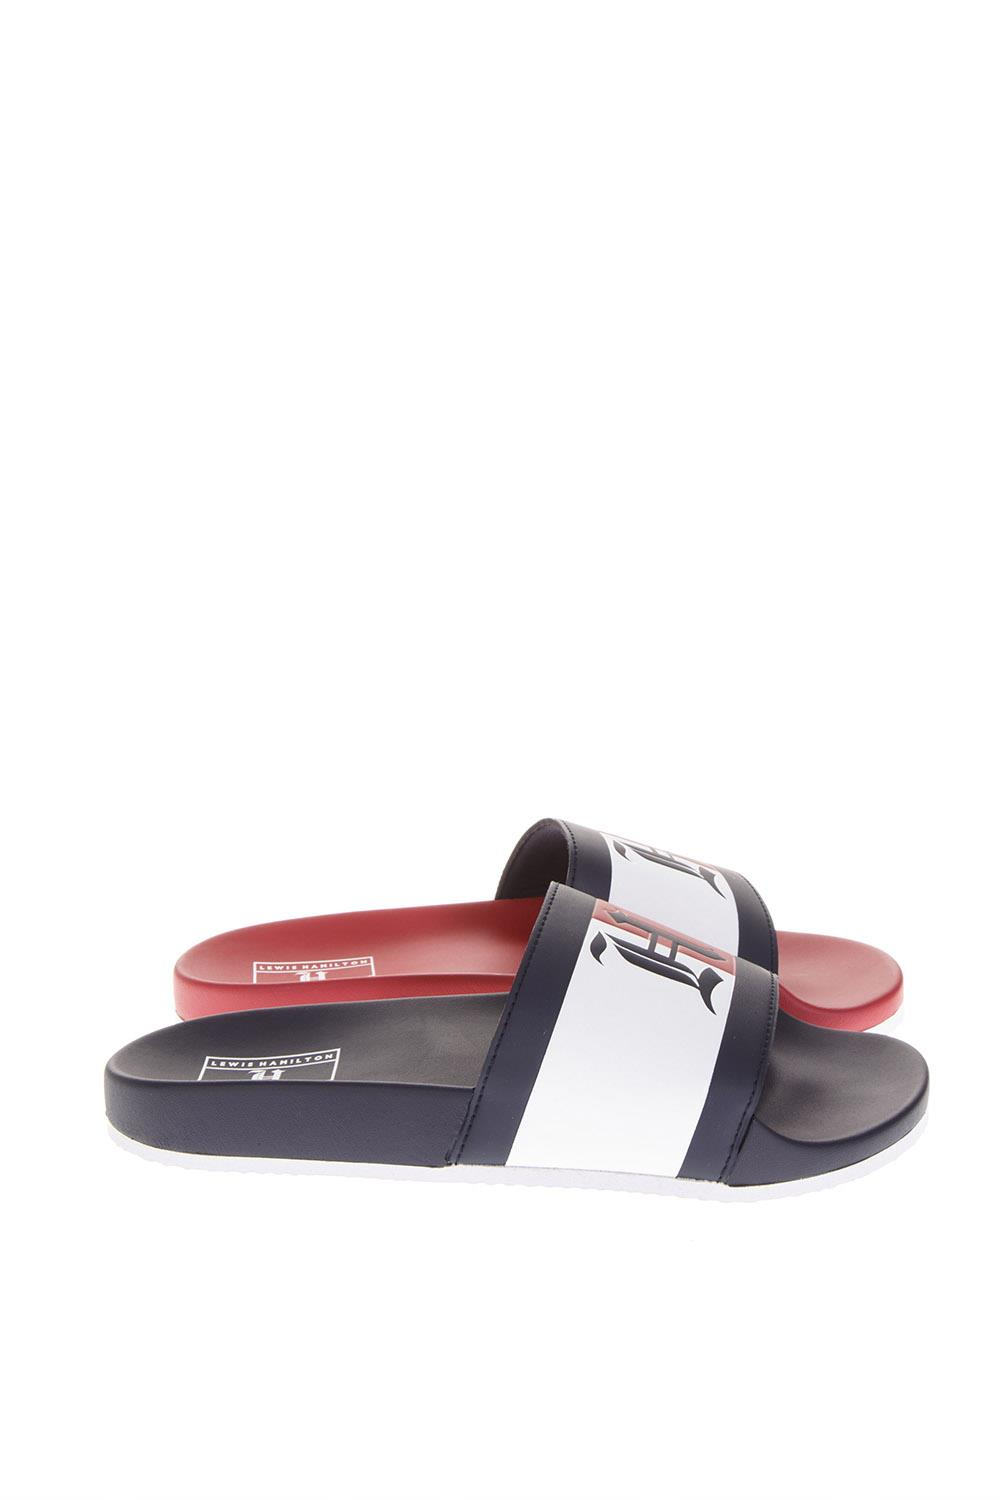 1923a3aa04e2b7 LEWIS HAMILTON TWO COLOR FAUX LEATHER SLIPPER FW 2018 - HILFIGER COLLECTION  - Boutique Galiano